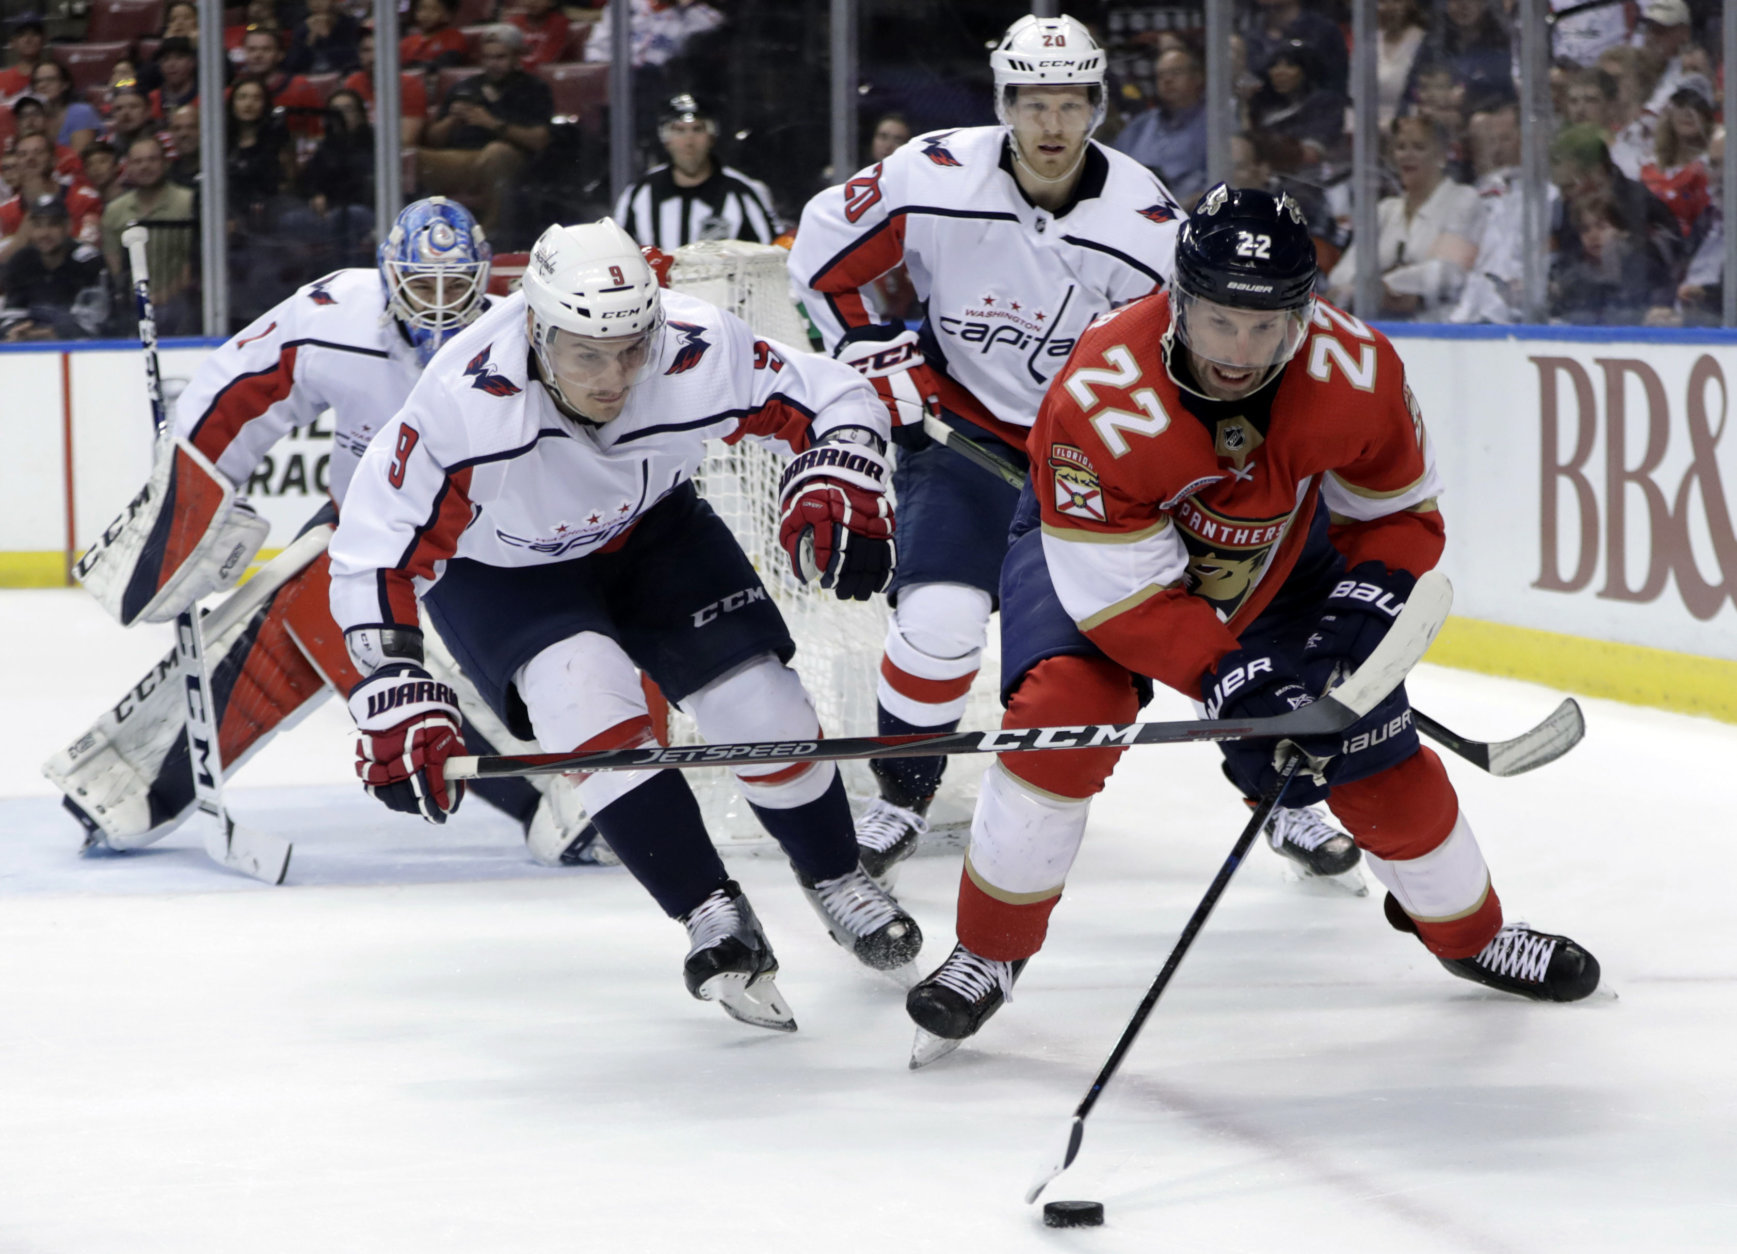 Florida Panthers right wing Troy Brouwer (22) skates with the puck as Washington Capitals defenseman Dmitry Orlov (9) defends during the second period of an NHL hockey game, Monday, April 1, 2019, in Sunrise, Fla. (AP Photo/Lynne Sladky)